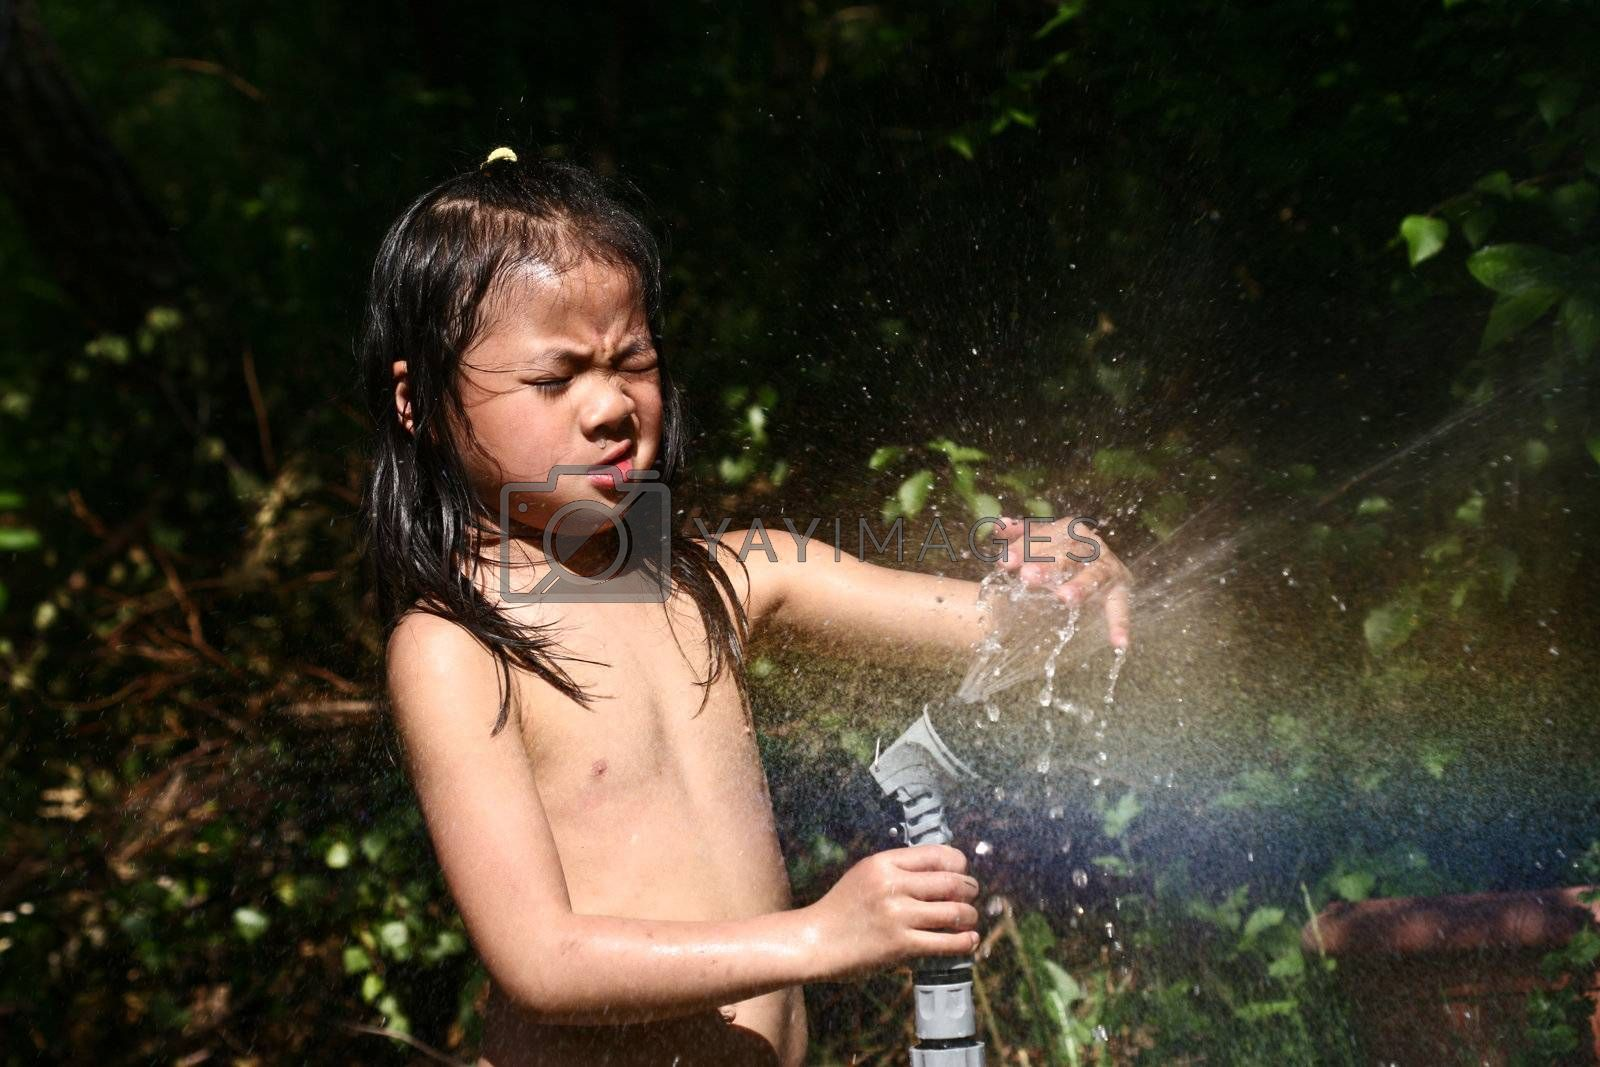 close up of child head splashing with water